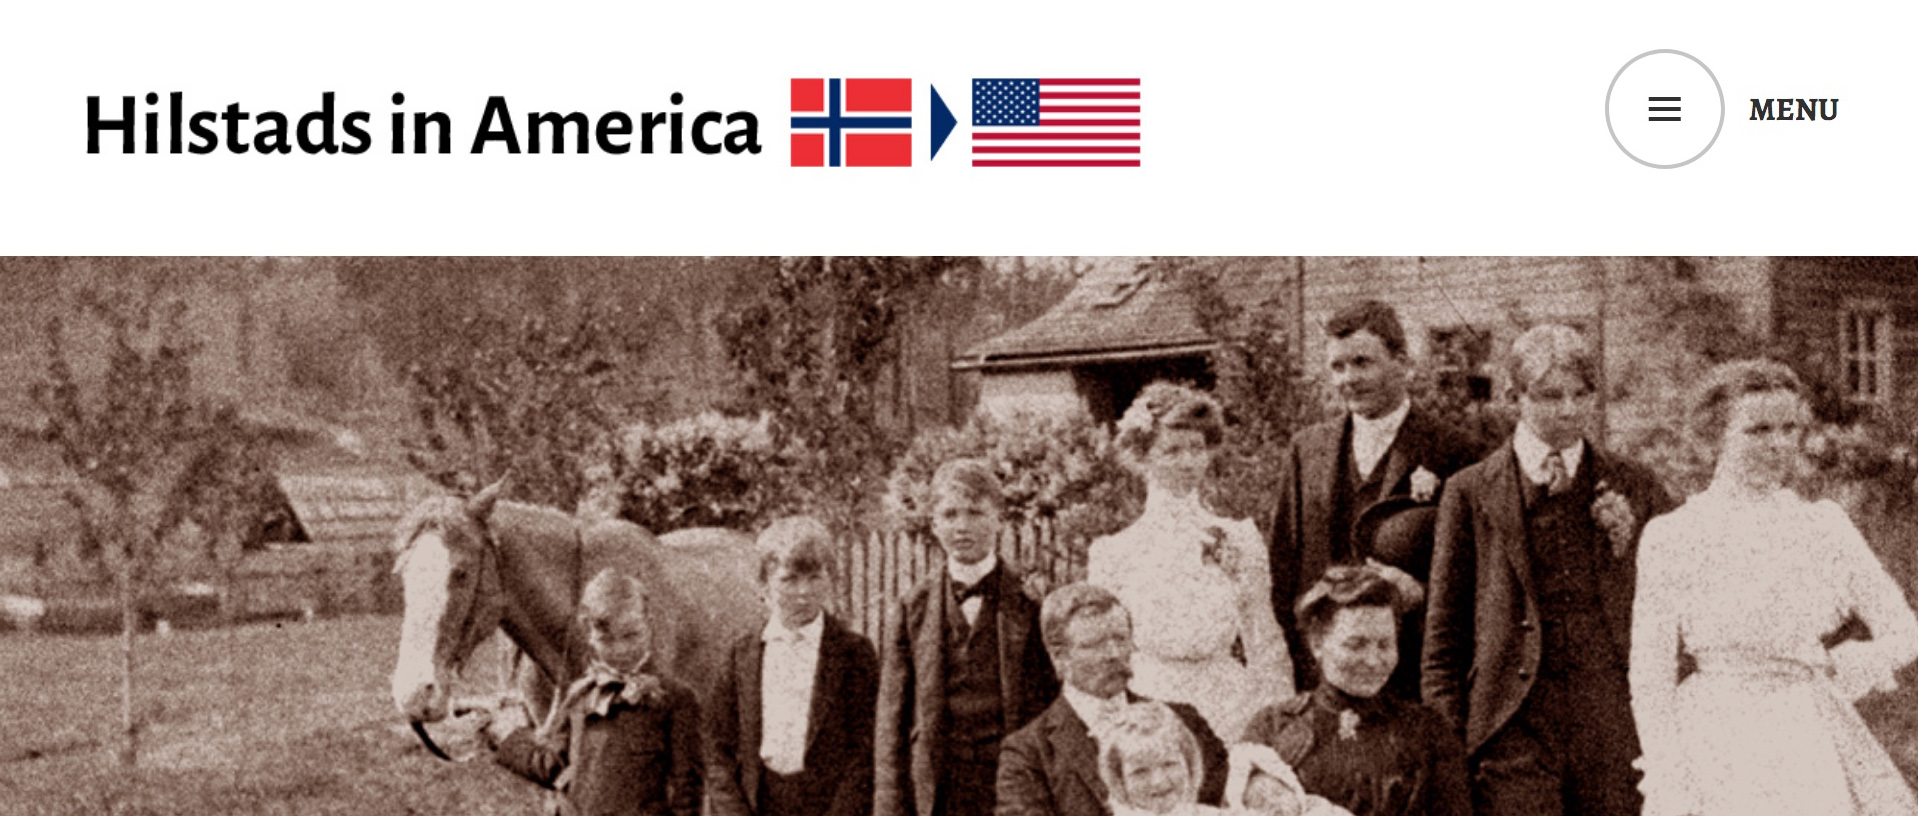 Photo and graphics from Hilstad family immigration history website